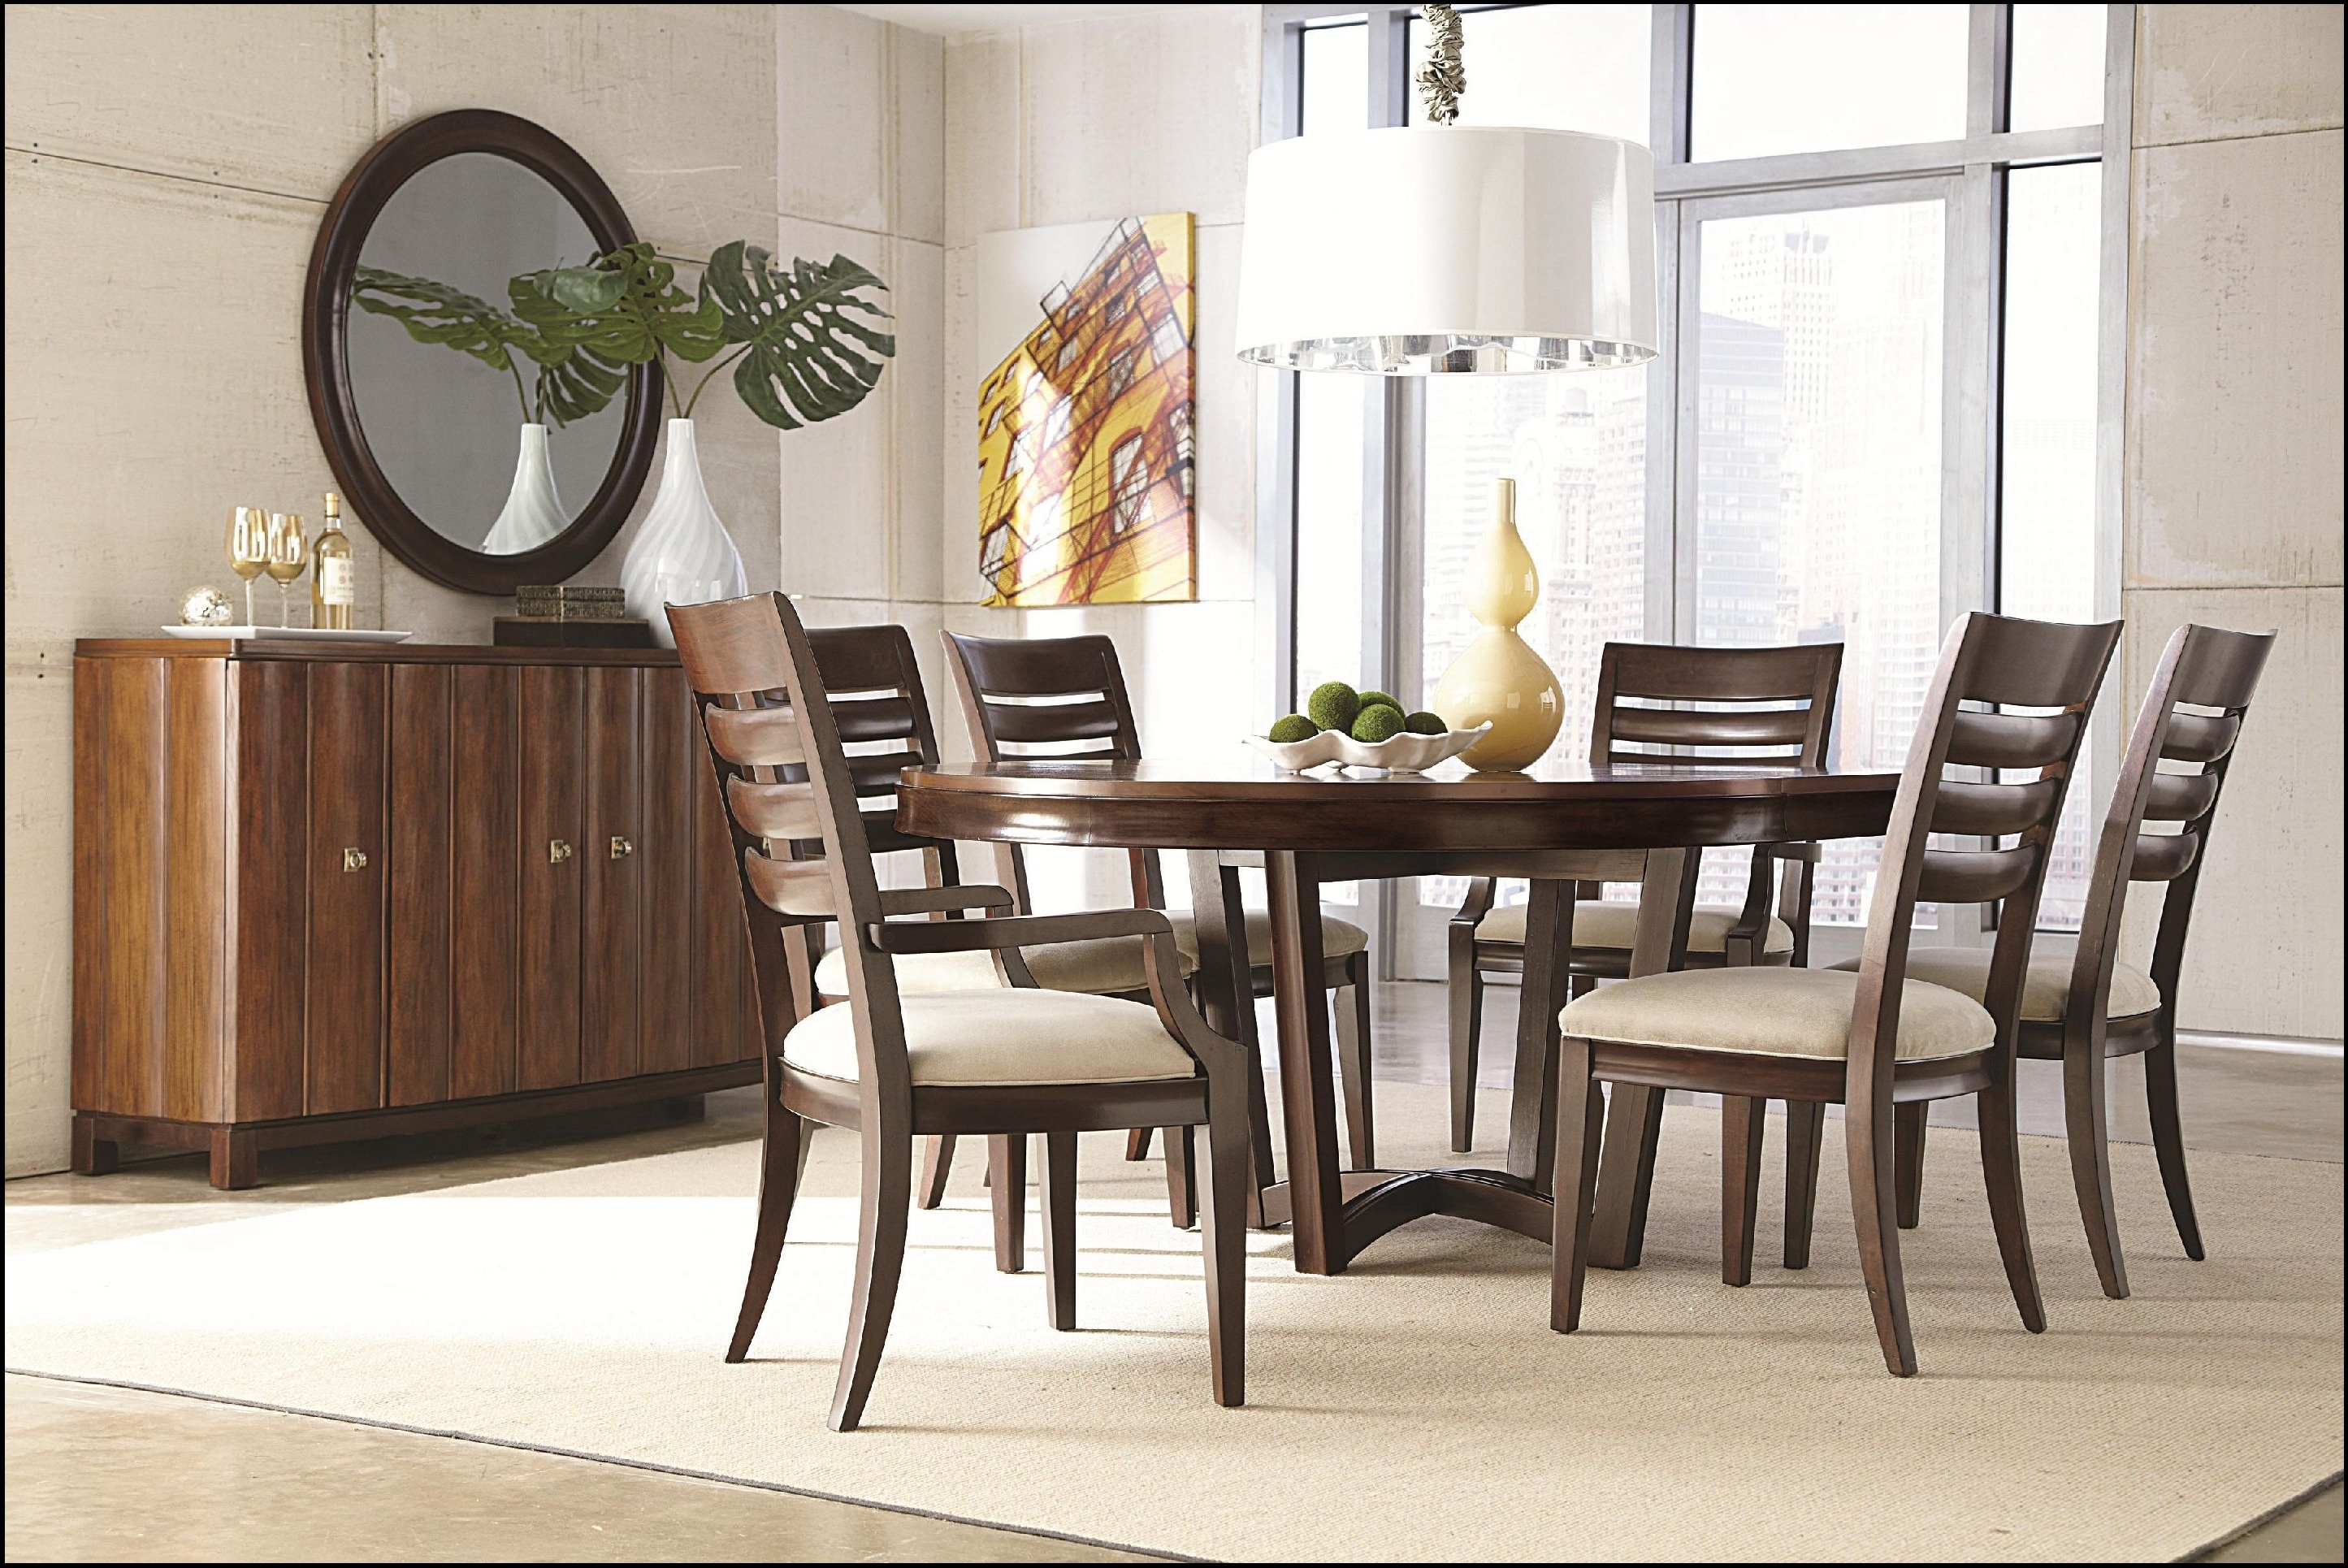 Home Design Ideas inside 6 Seater Round Dining Tables